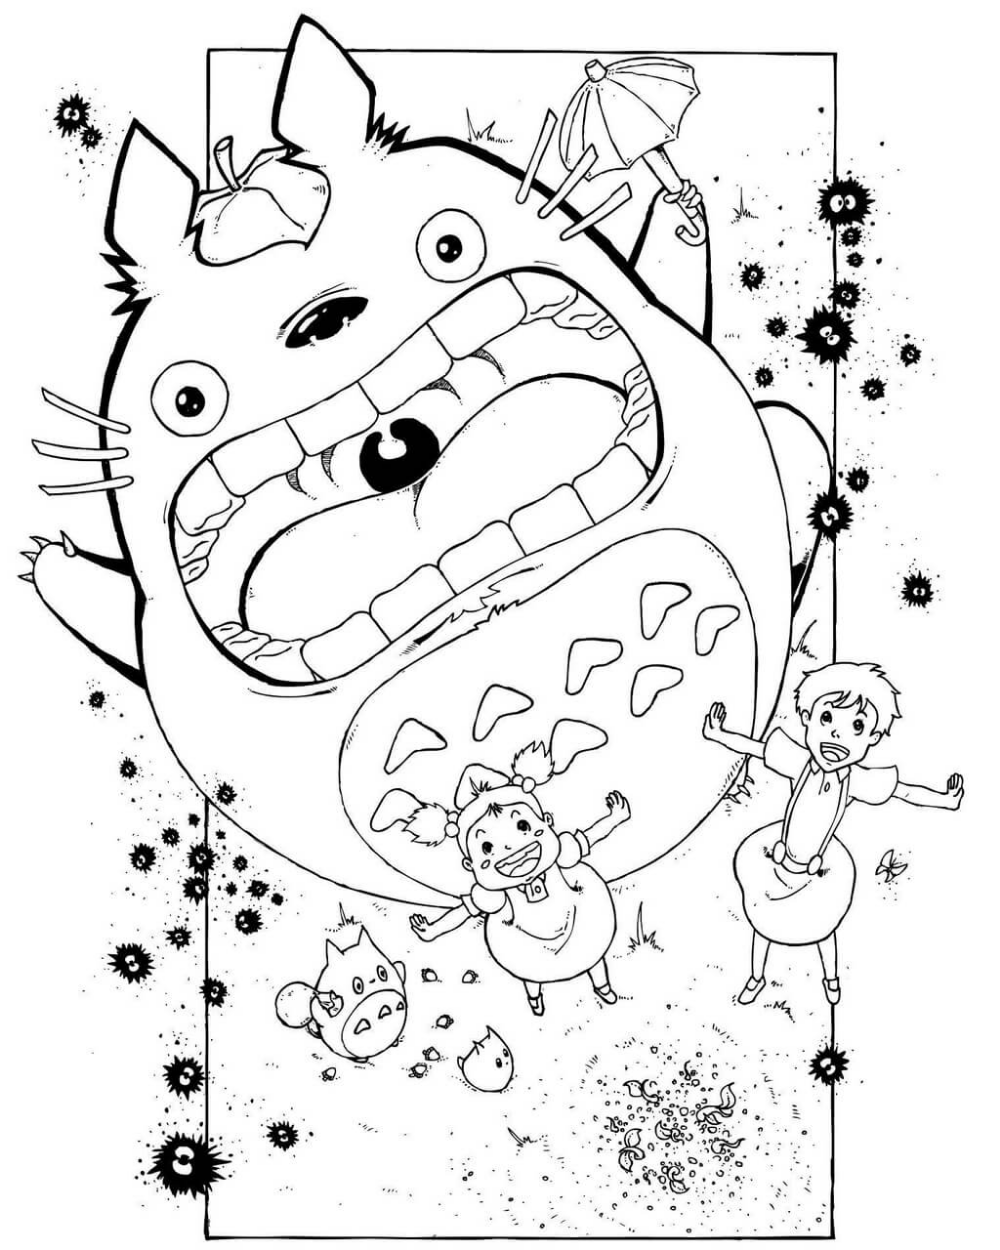 The 26 Best Colouring Pages for Kids for Long Days at home - Paul